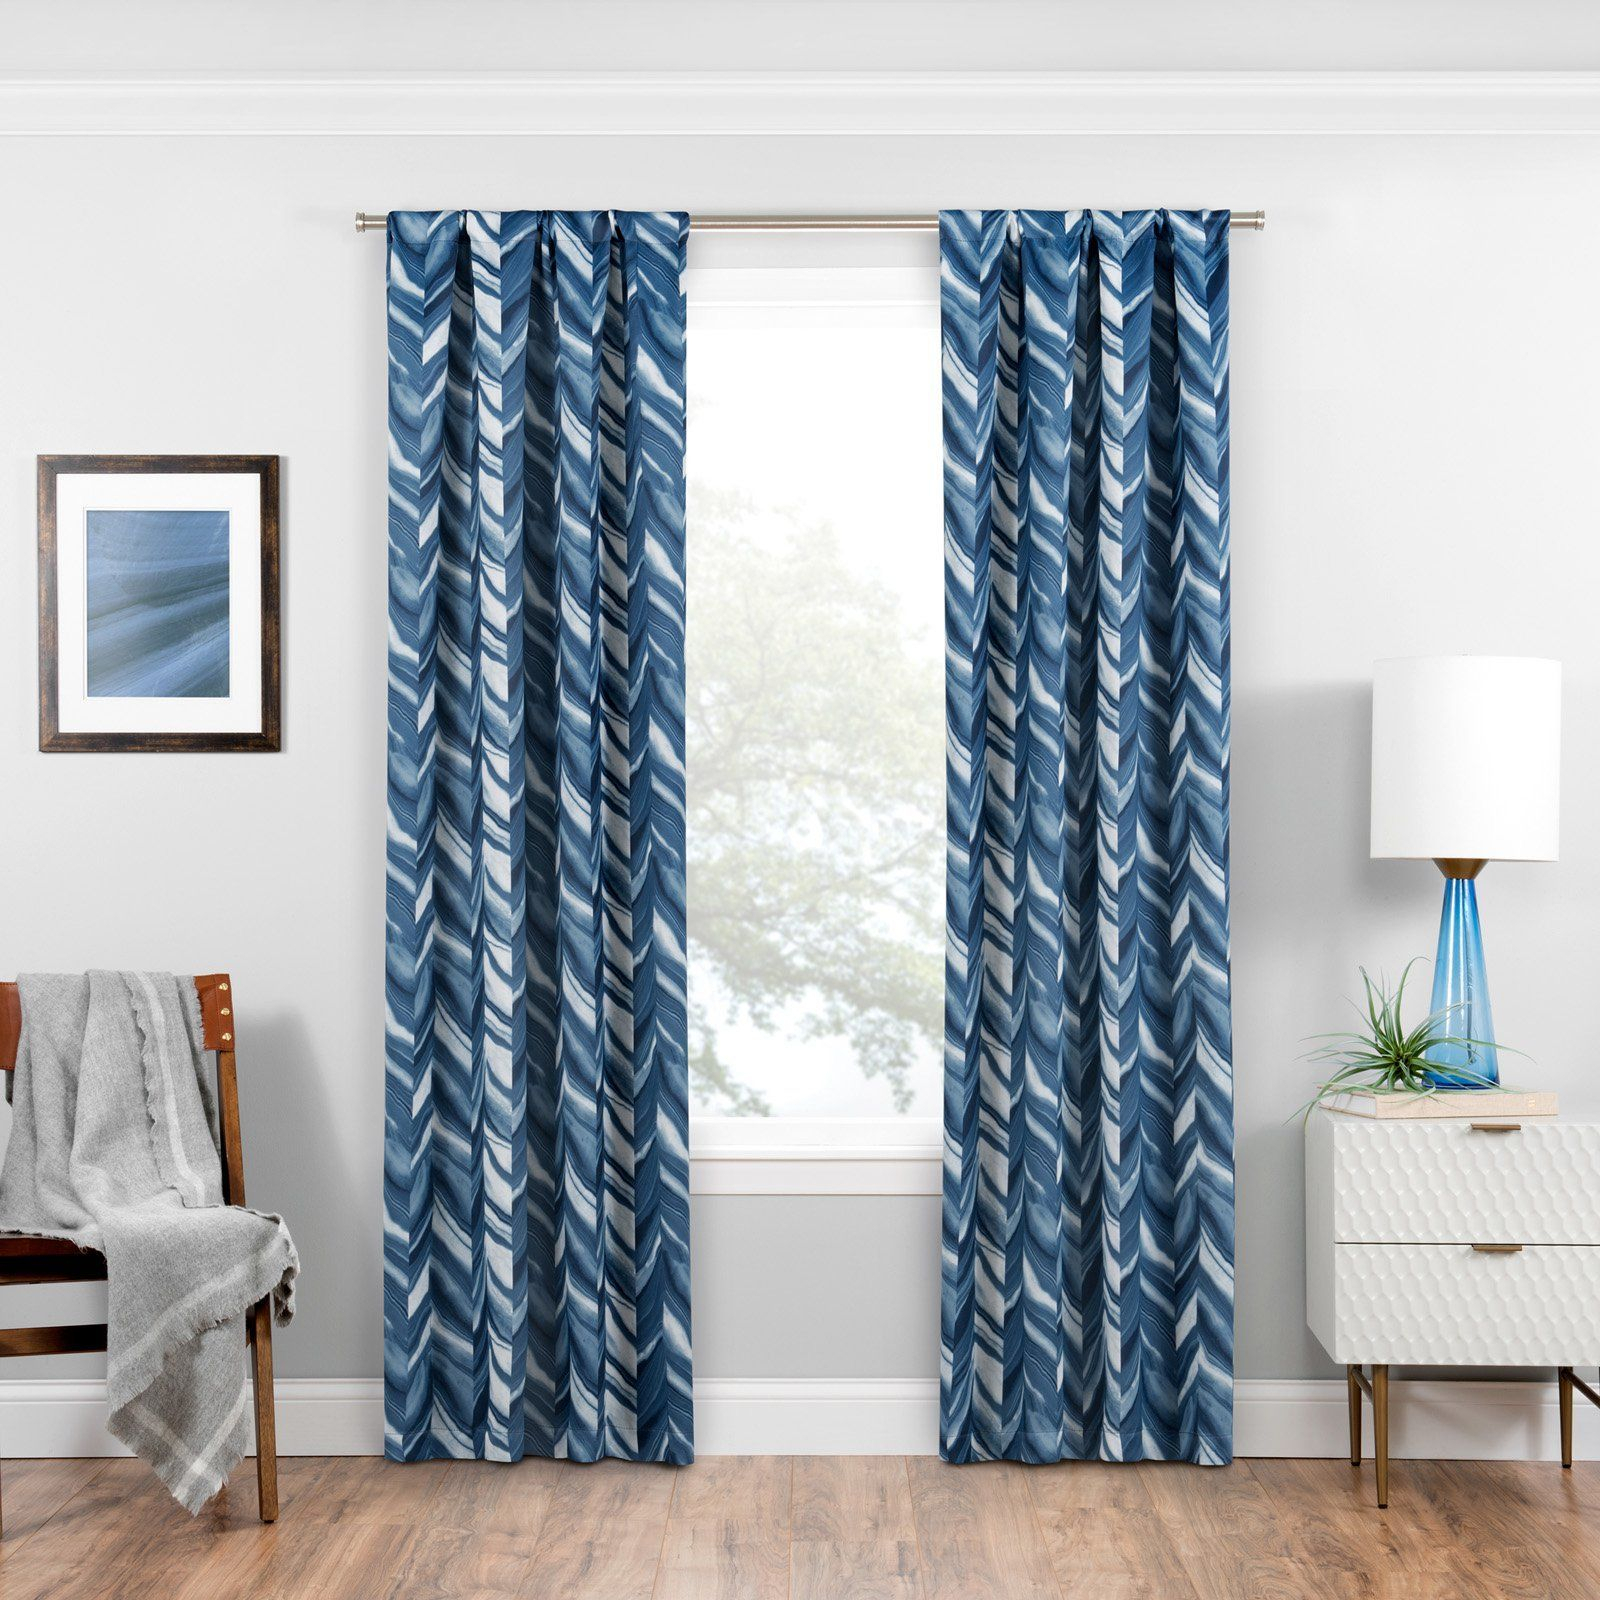 Eclipse Darrell Thermaweave Blackout Window Curtain Panel With Eclipse Darrell Thermaweave Blackout Window Curtain Panels (View 7 of 20)